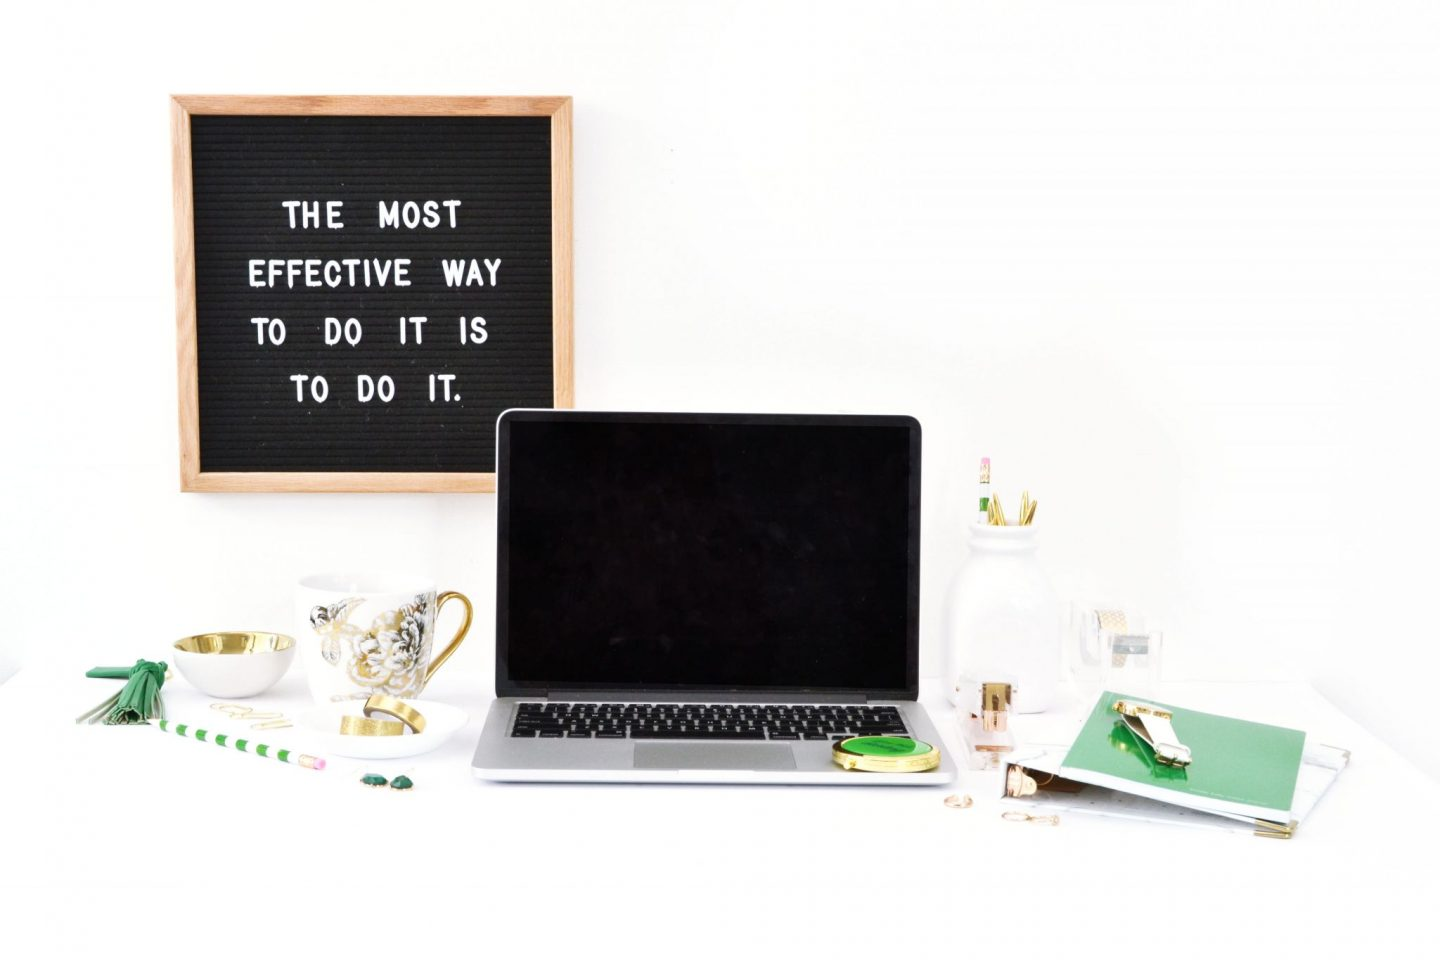 Laptop with green and white stationary next to it and motivational wall picture.